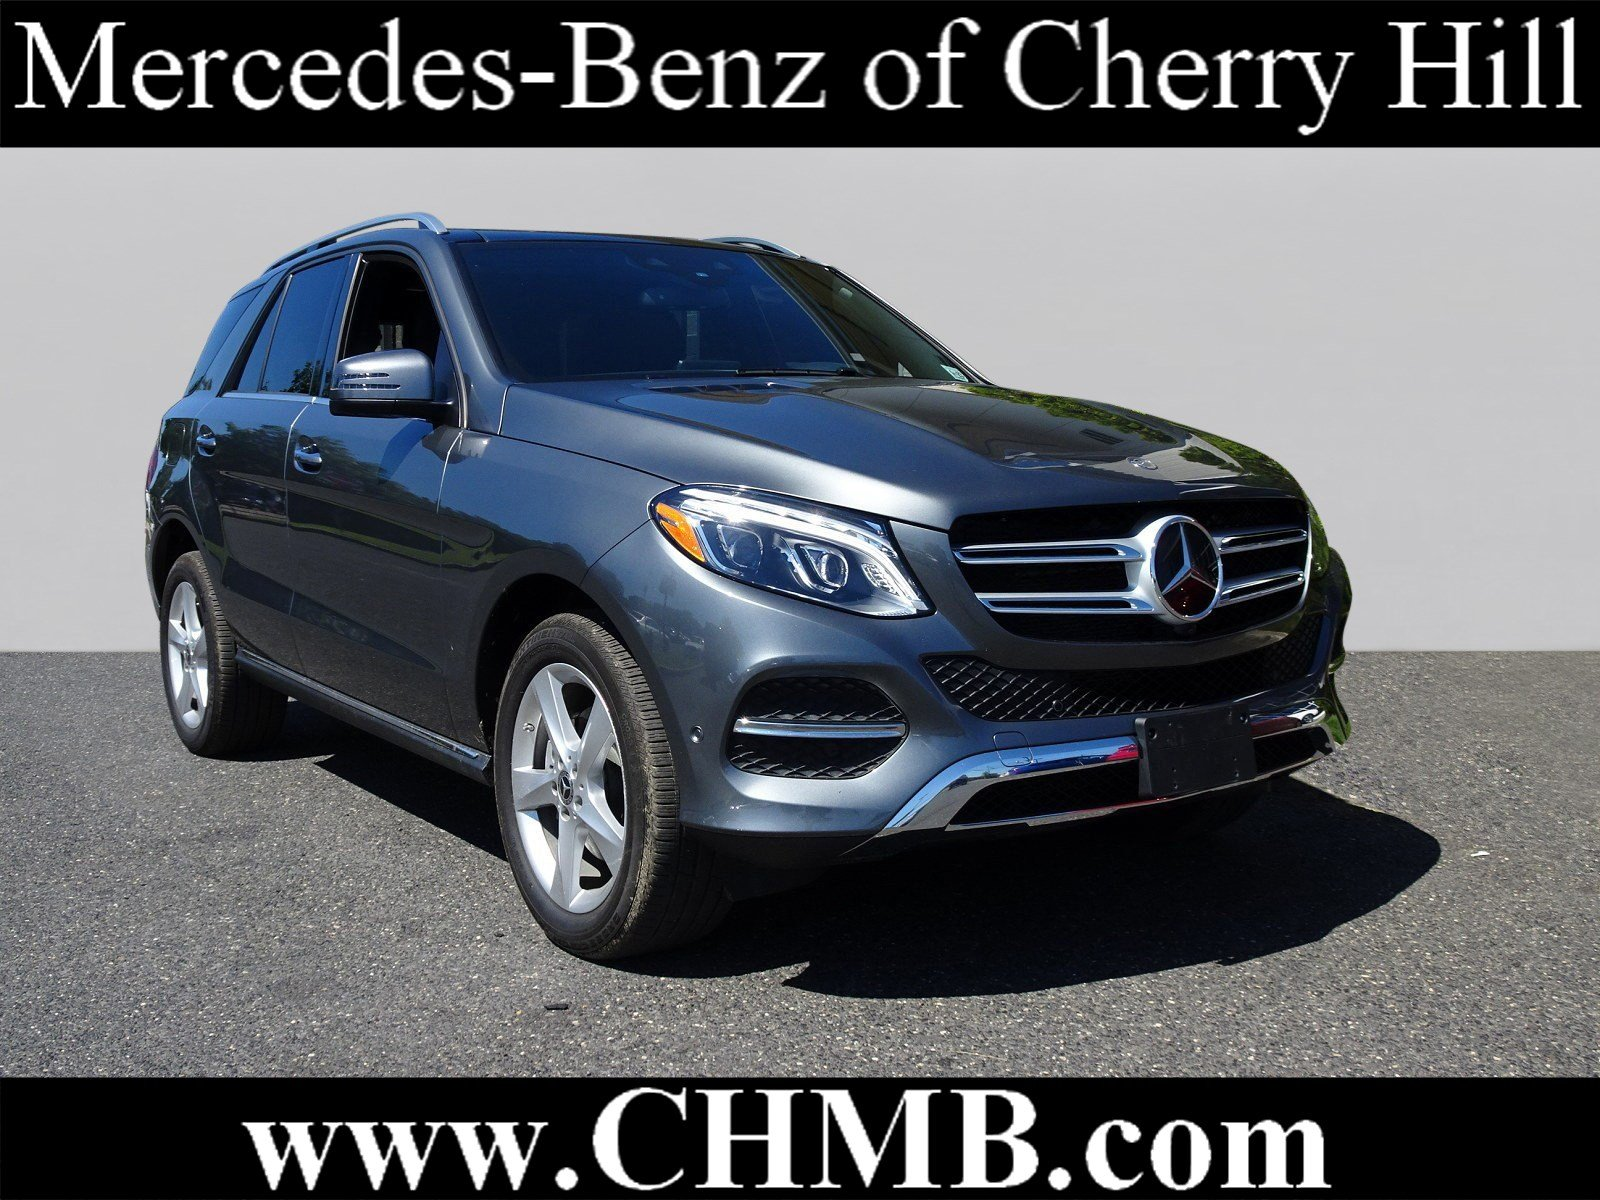 Pre Owned 2018 Mercedes Benz GLE GLE 350 SUV in Cherry Hill LM0042